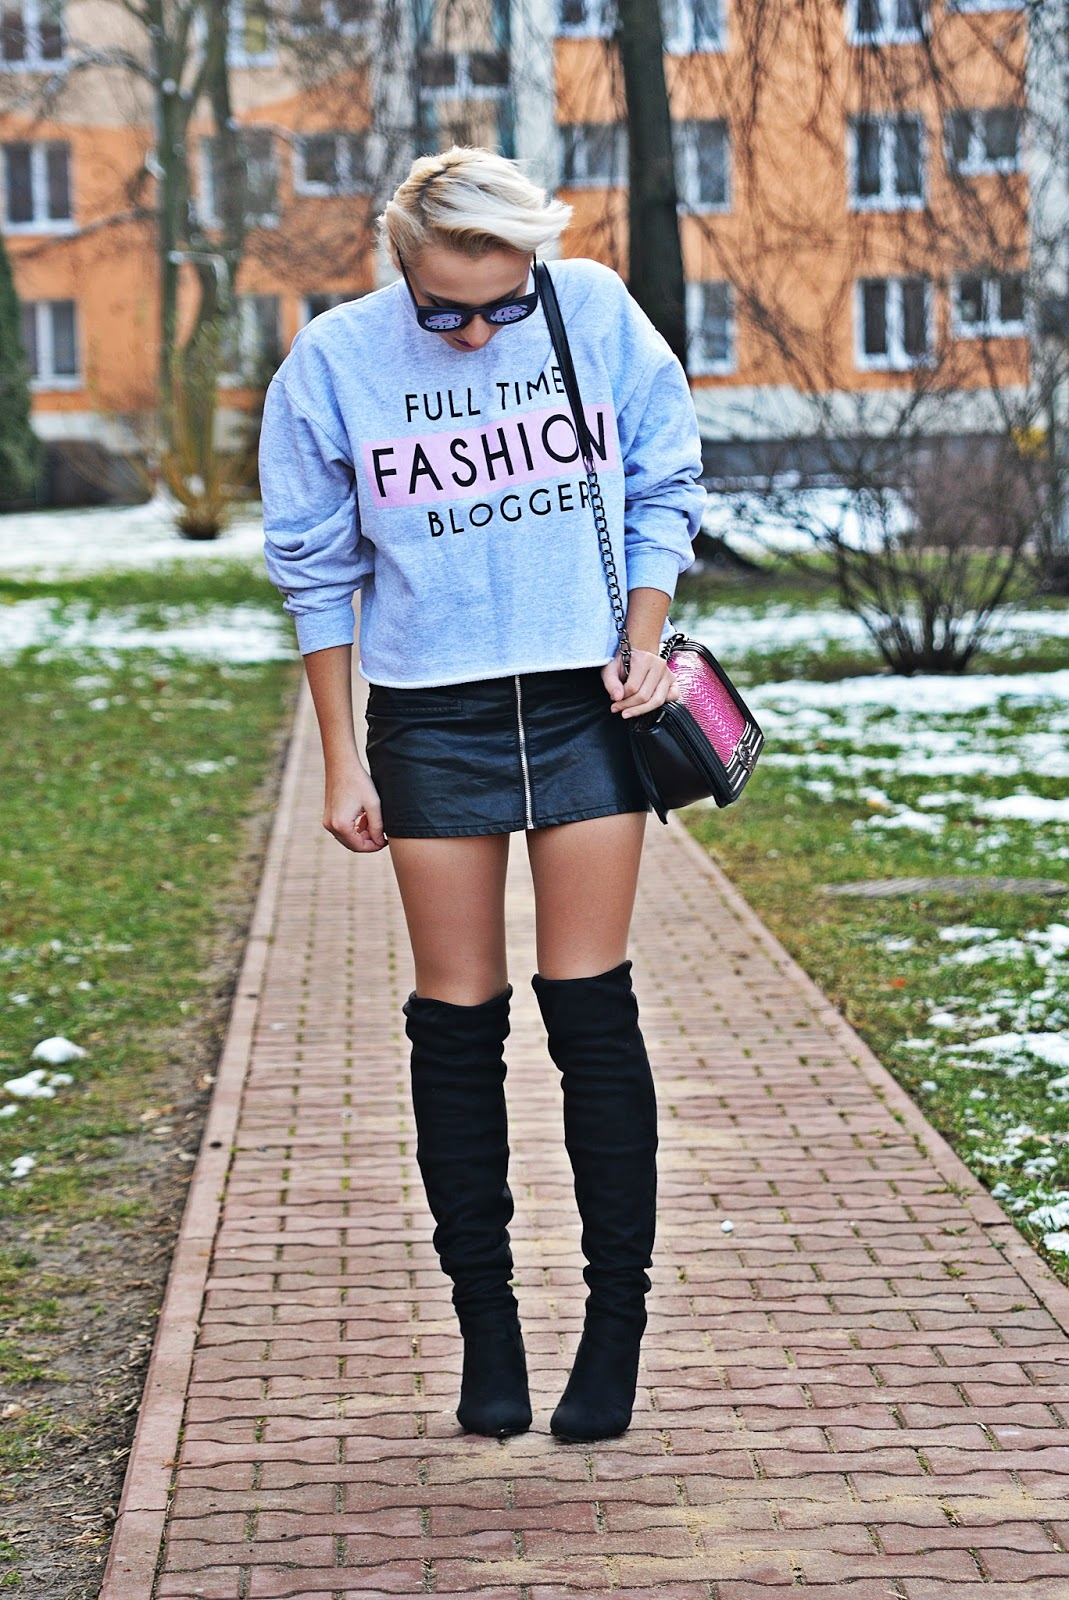 bluza_river_island_full_time_fashion_blogger_karyn2